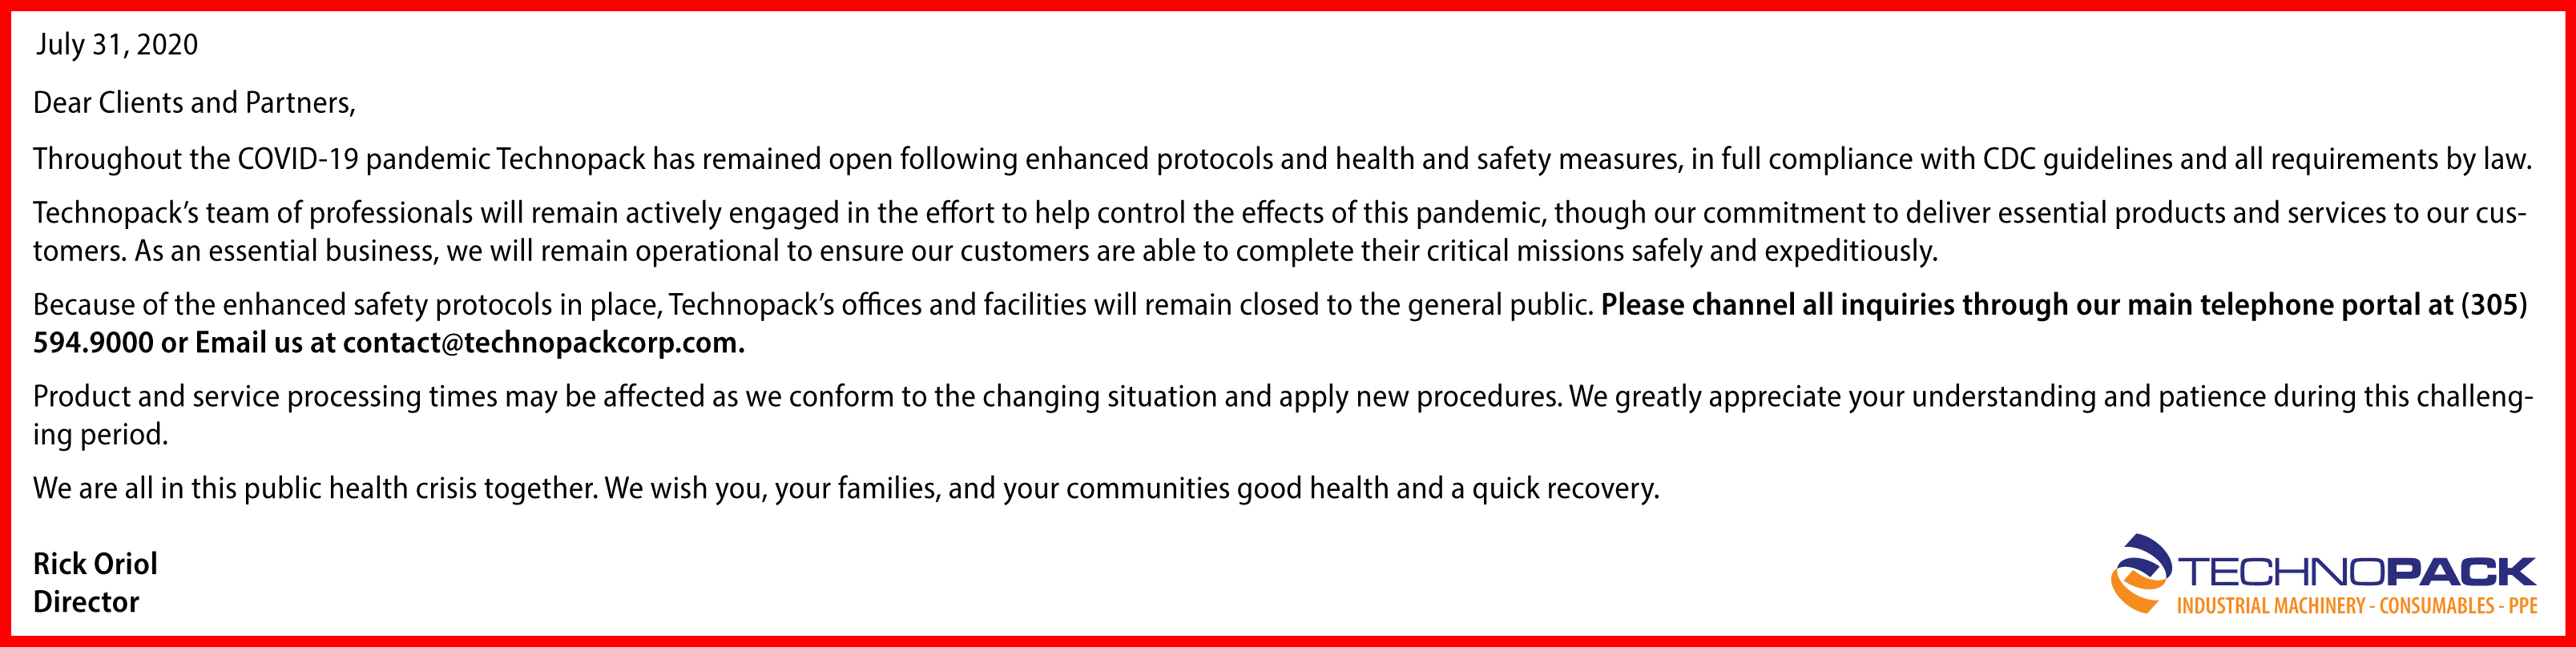 Letter from Director related to COVID-19